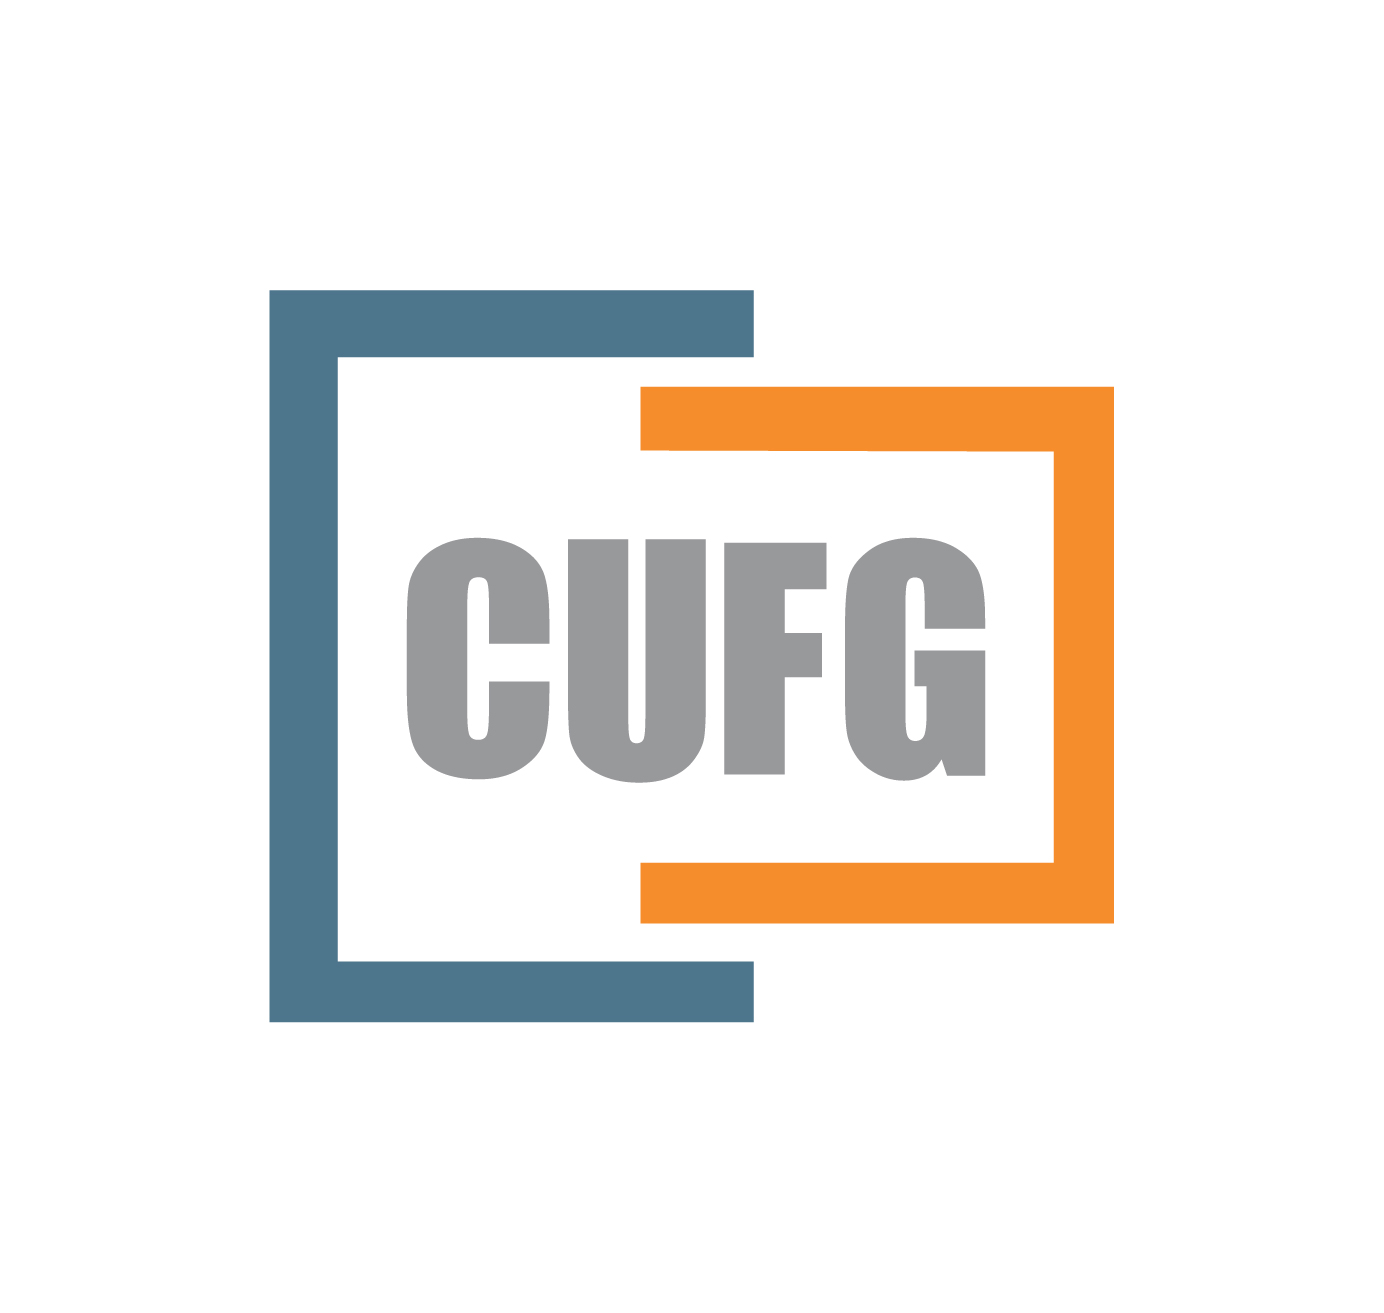 cufinancialgroup Logo